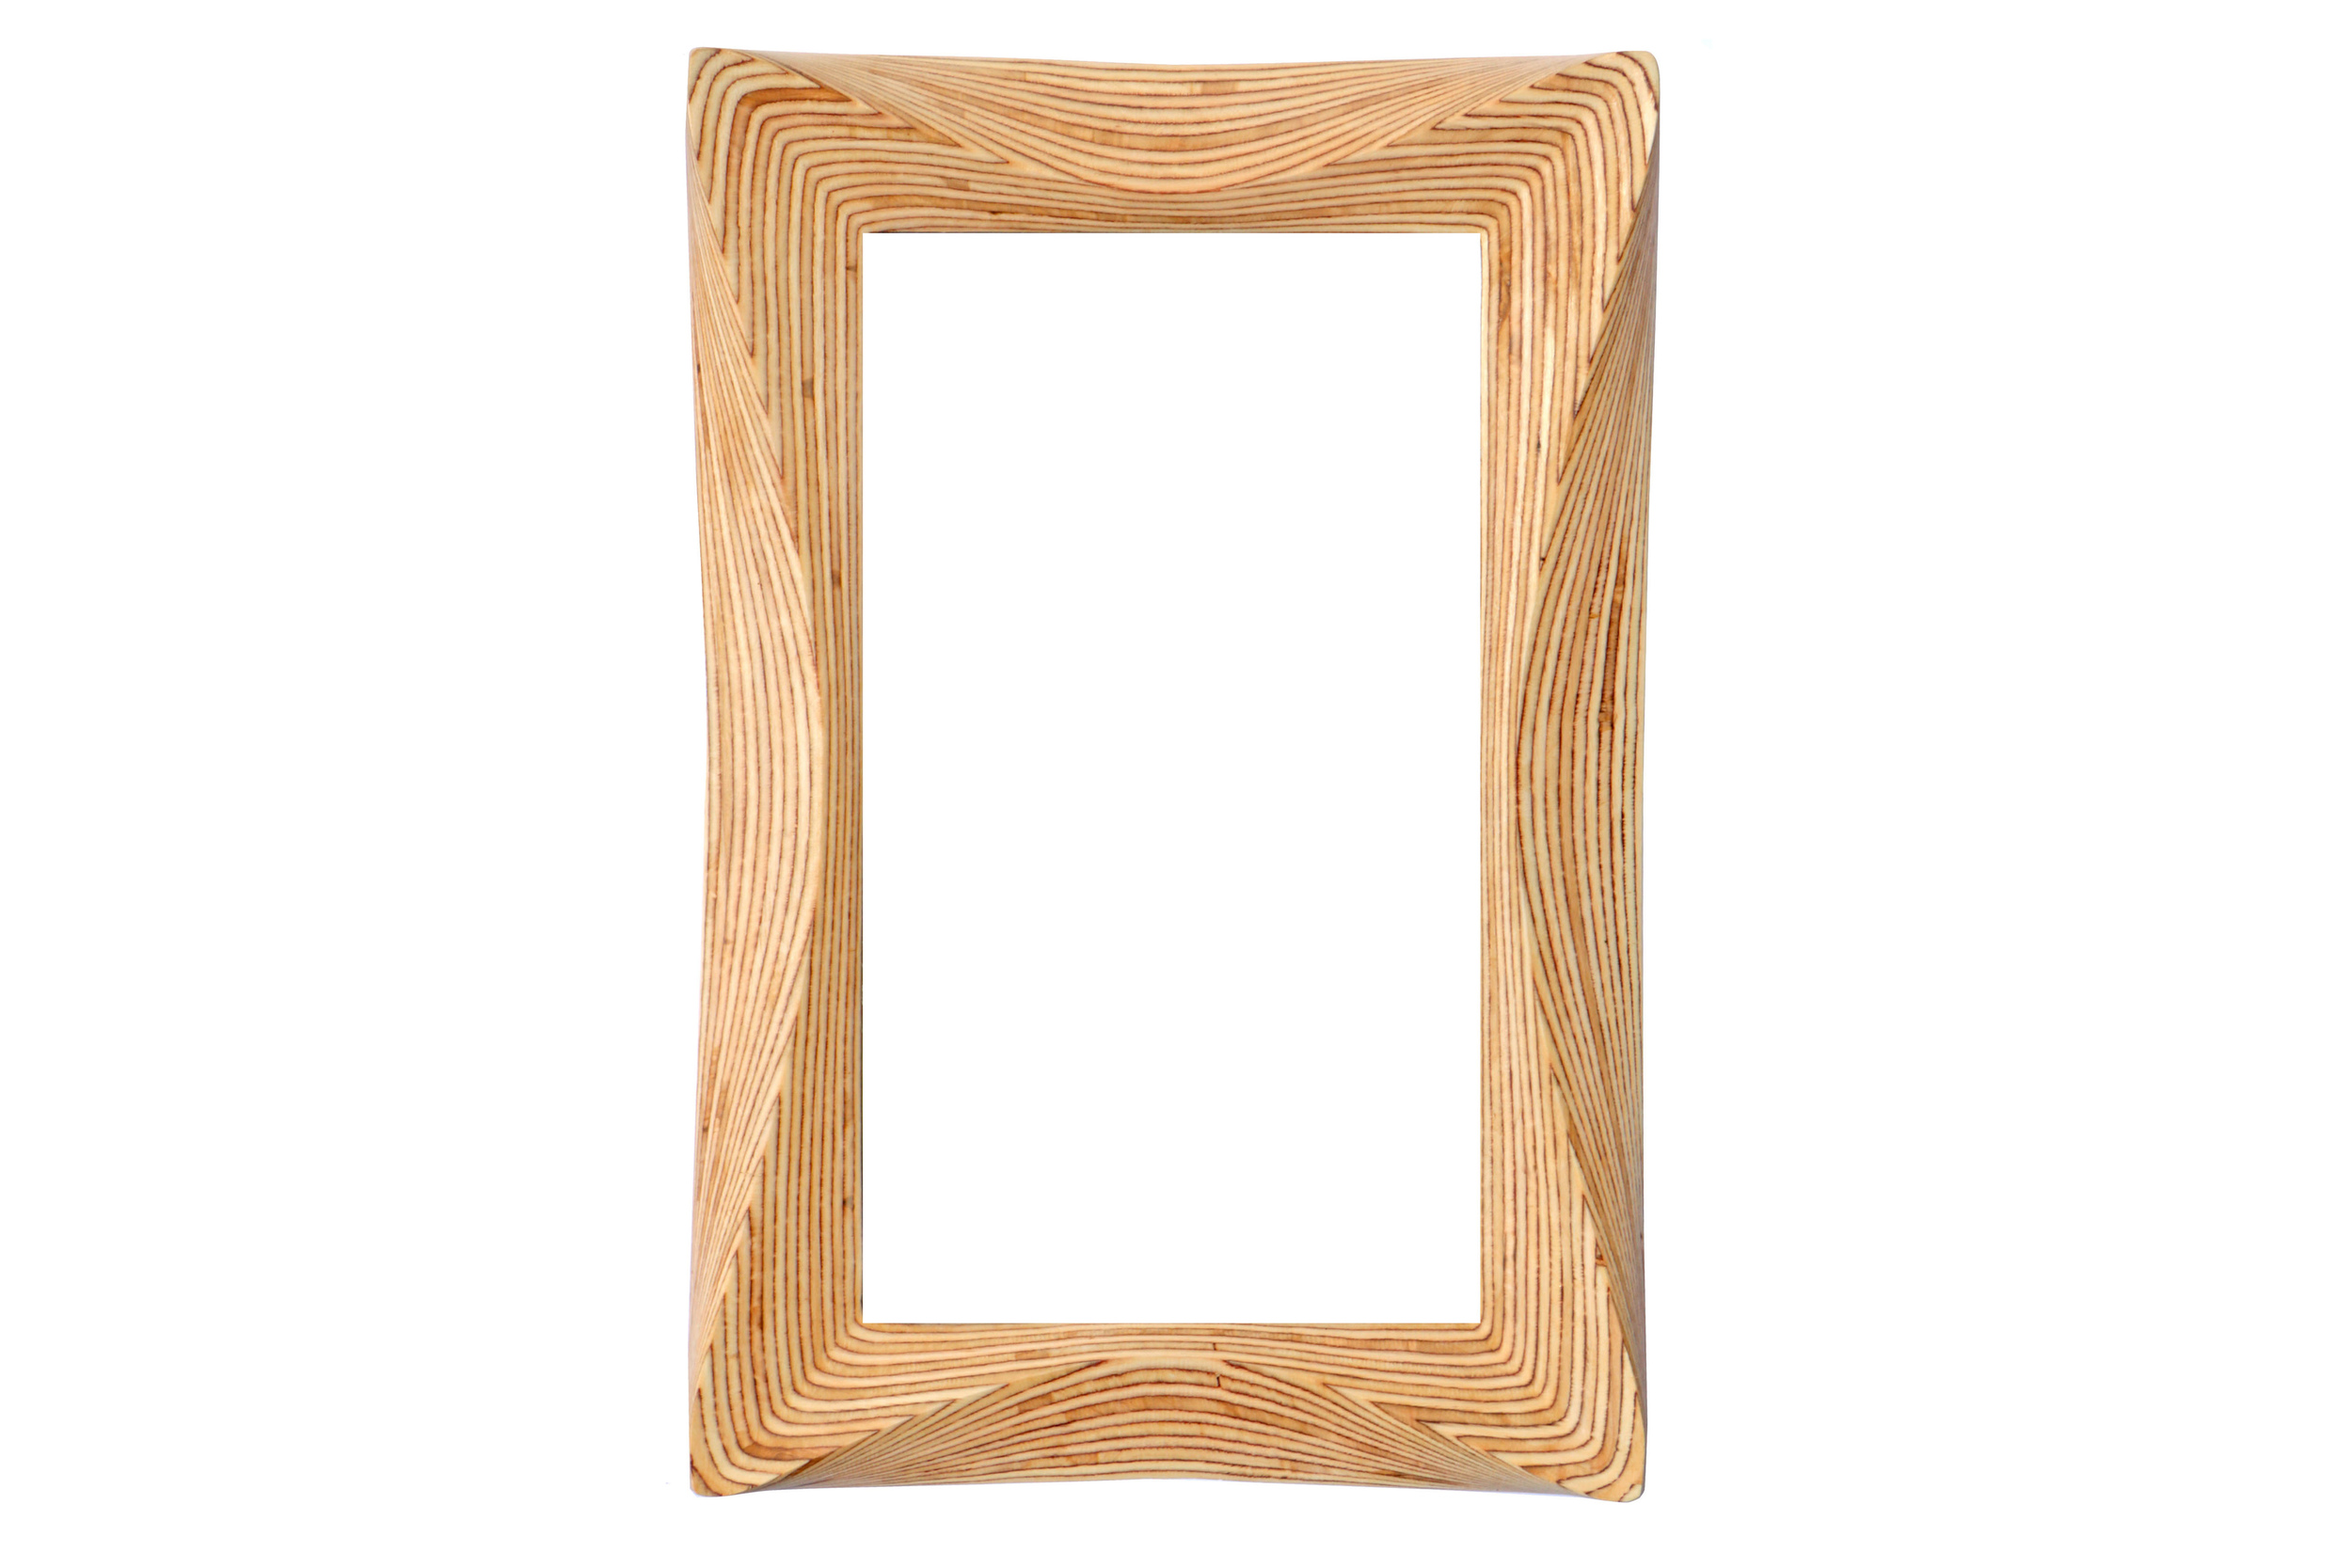 Large wooden mirror frame